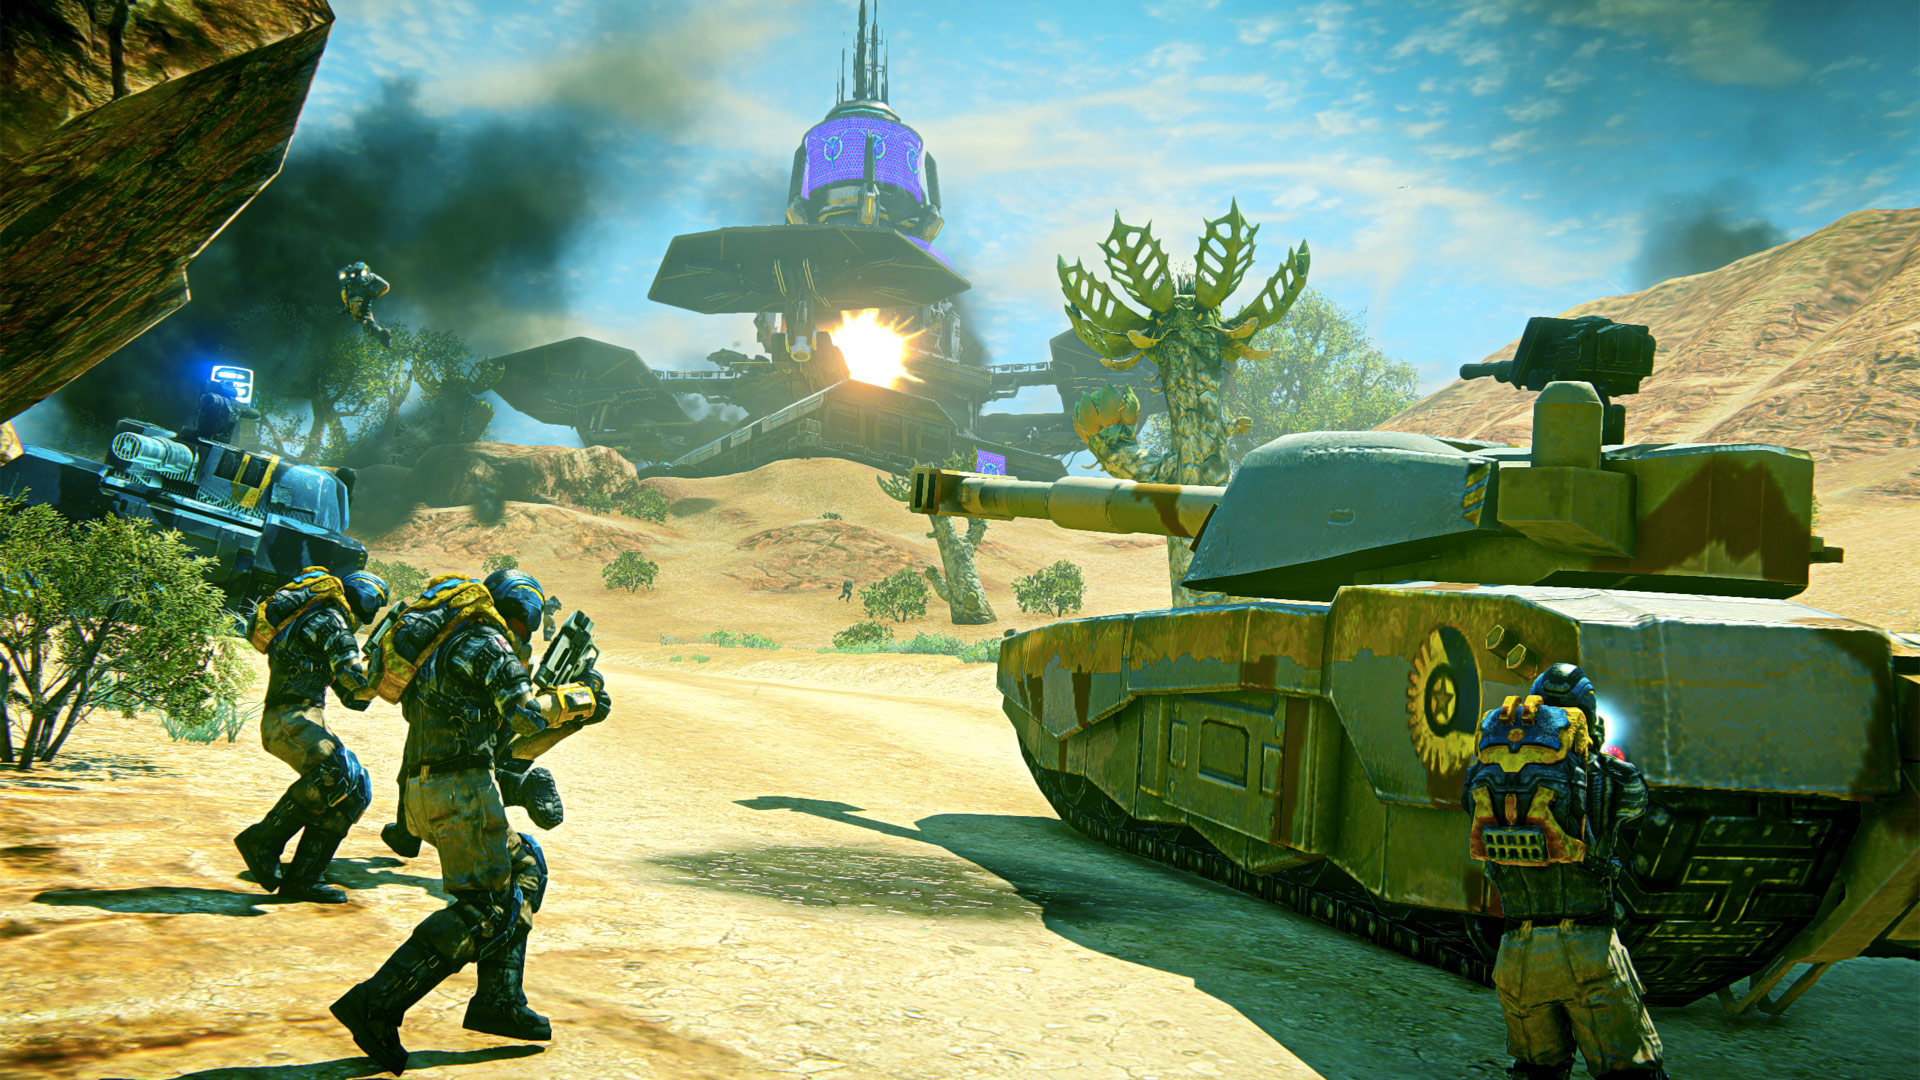 PlanetSide 2 comes to PS4 in closed beta later this month